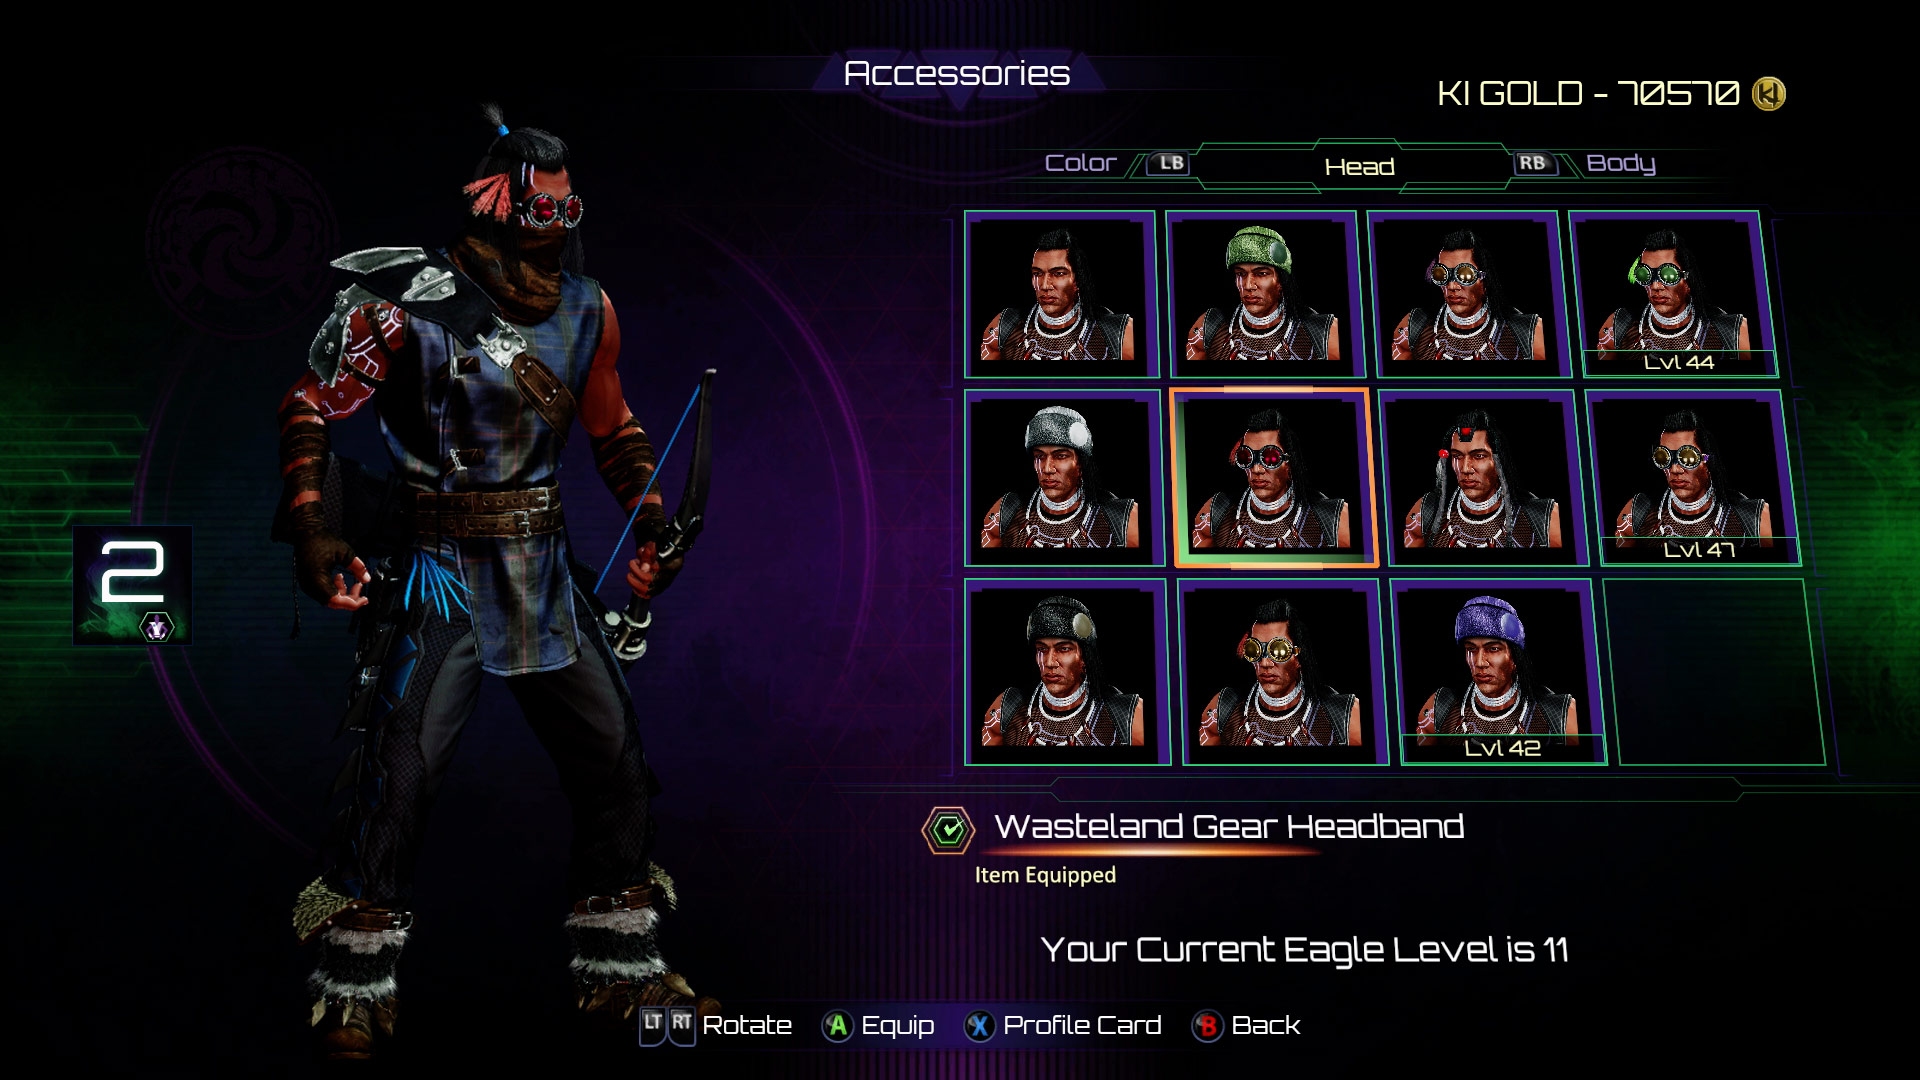 Eagle's accessories in Killer Instinct 3 out of 8 image gallery